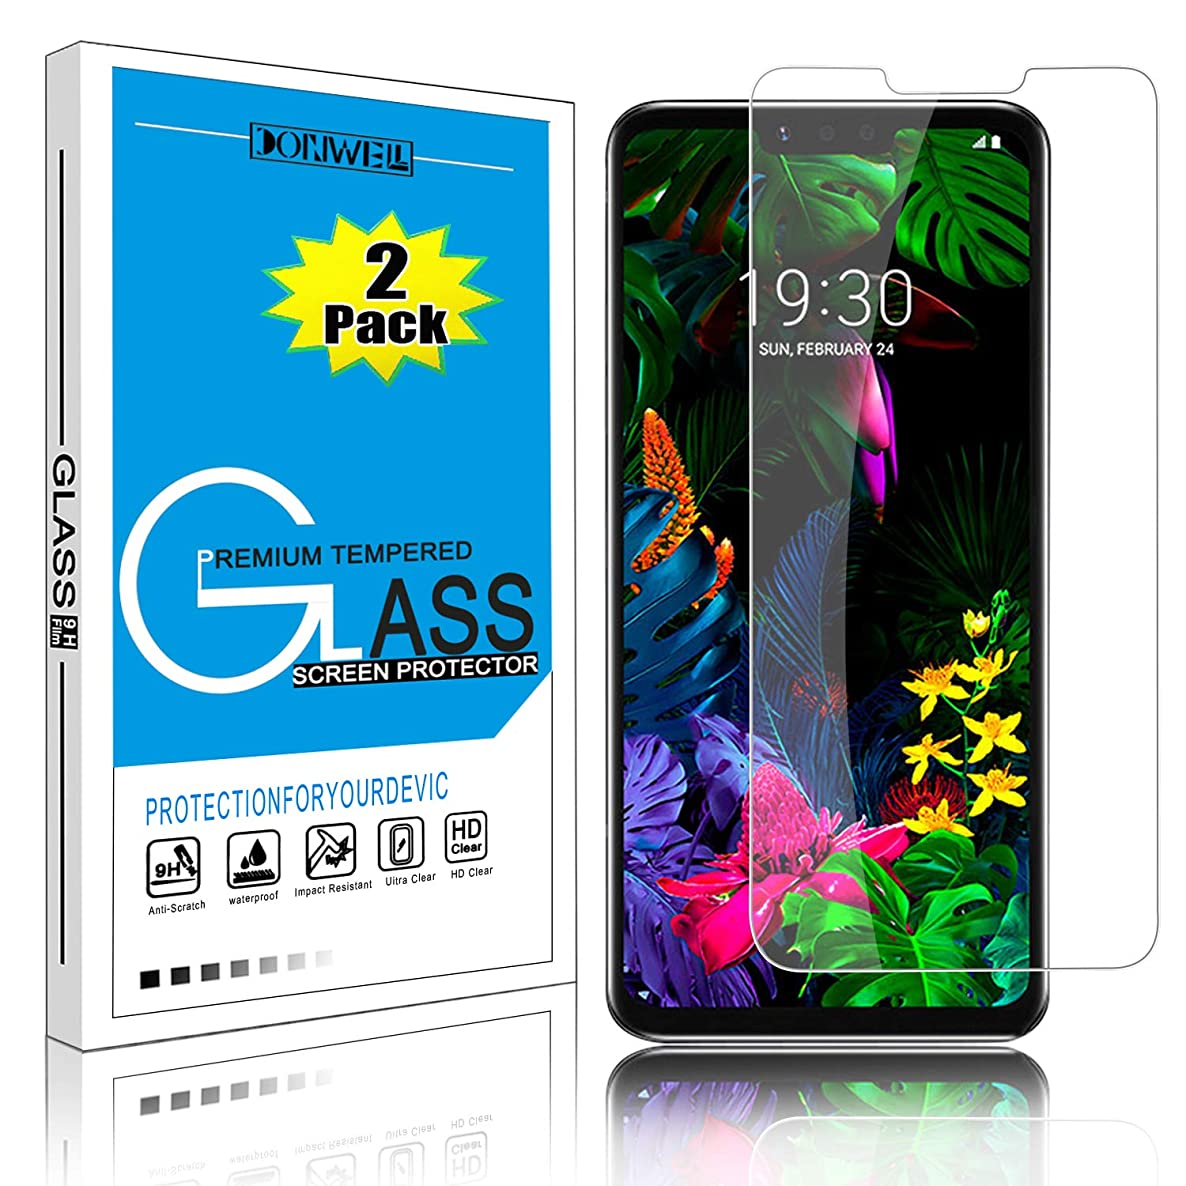 [2 Pack] LG G8 ThinQ Screen Protector, DONWELL LG G8 Ultra Clear Anti-Fingerprint Anti-Scratch Bubble-Free Tempered Glass Screen Protector for LG G8 / LG G8 ThinQ/LG G820 / LG Alpha (2 Pack)